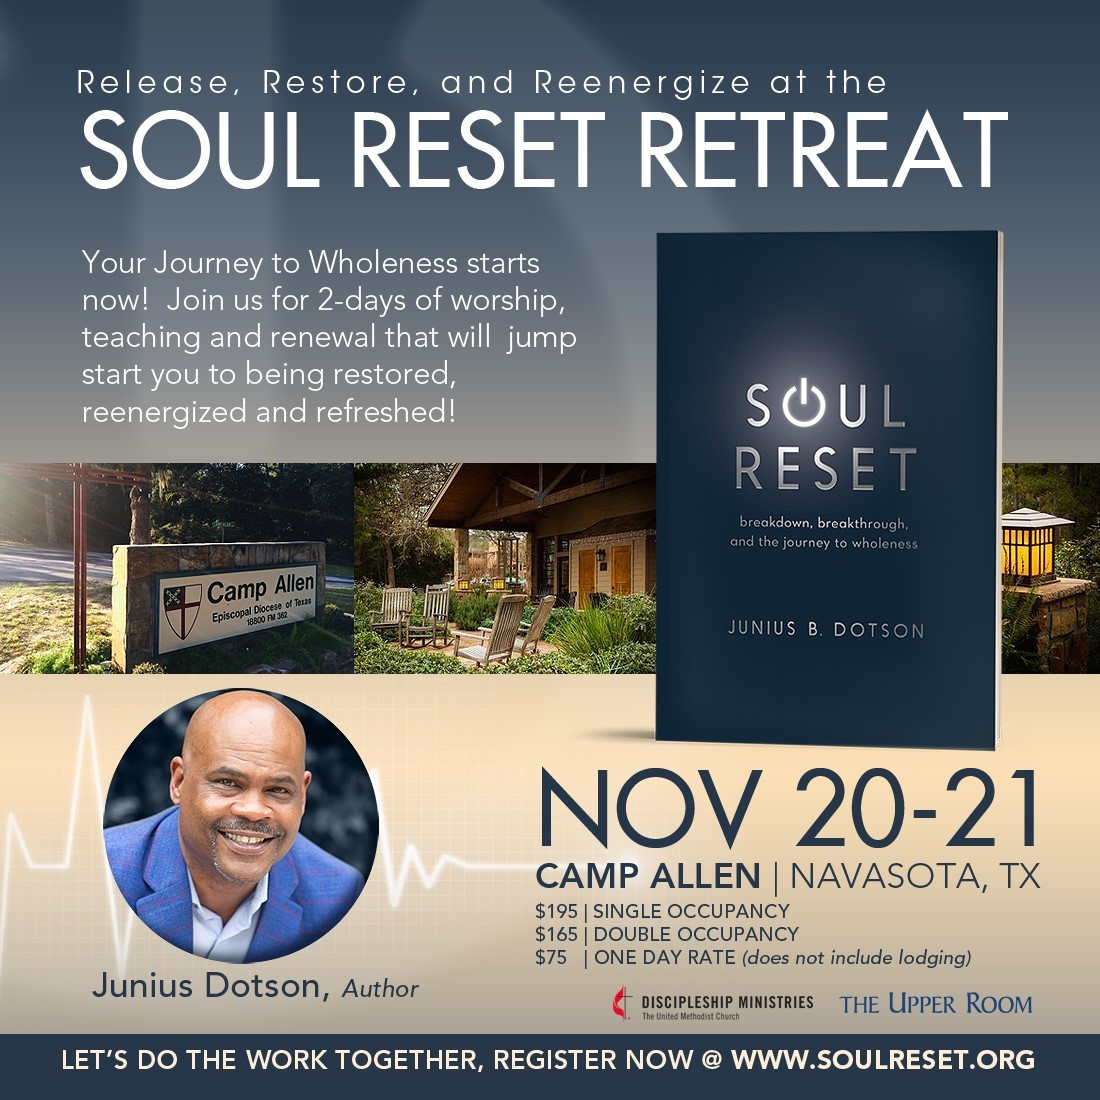 Soul reset retreat image